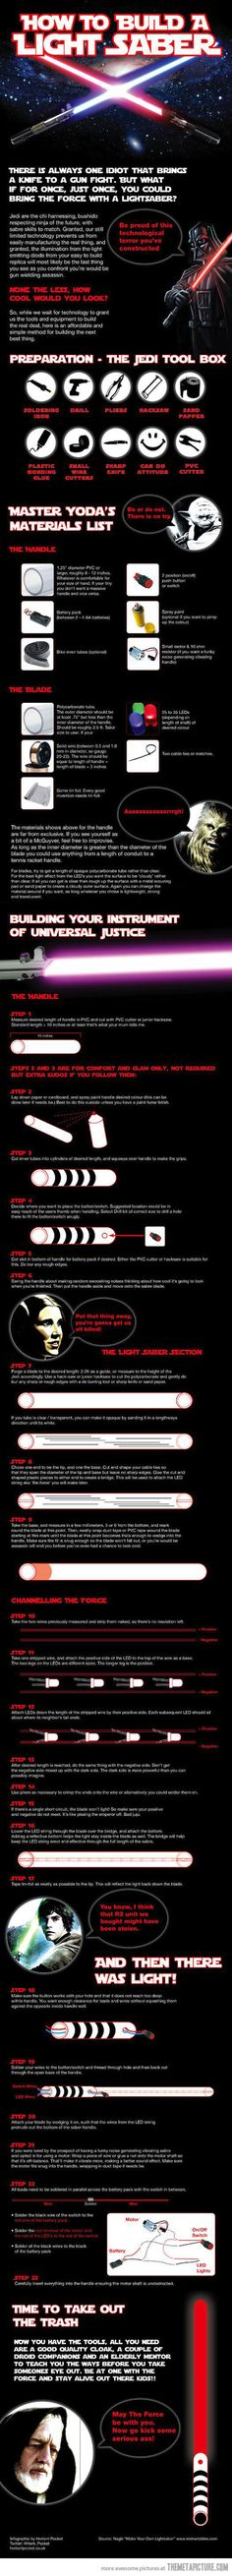 How to build your own lightsaber…